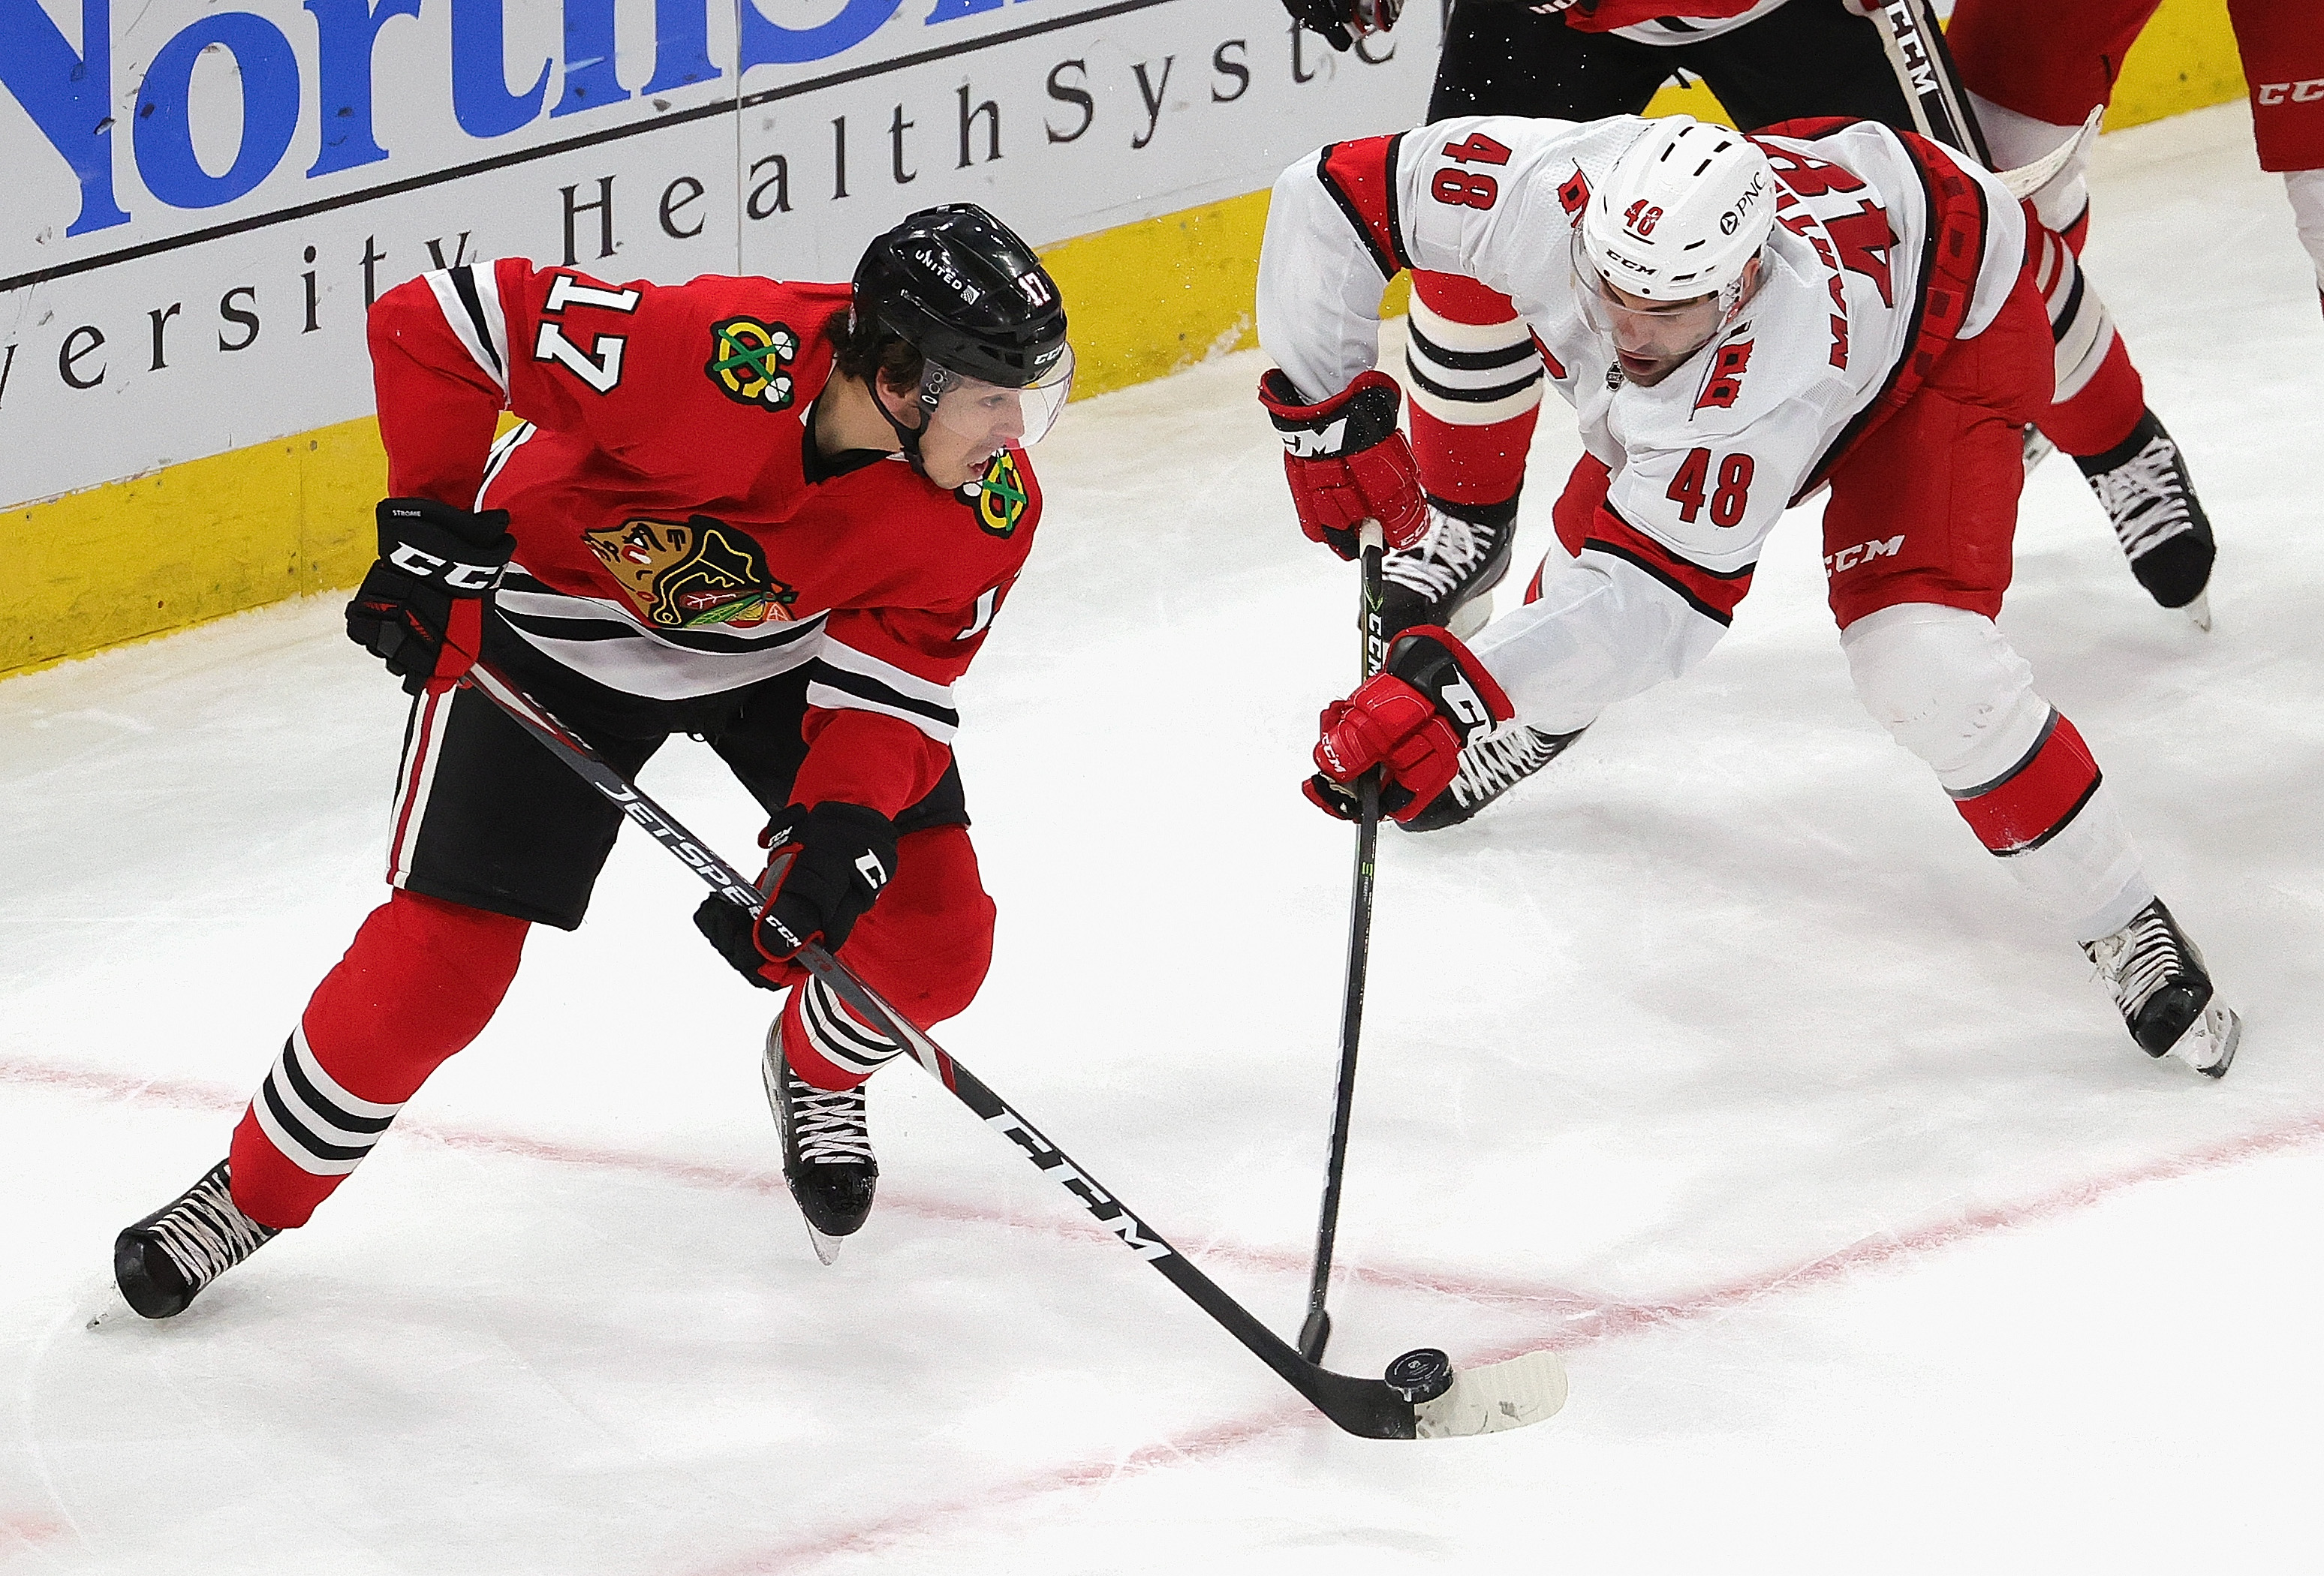 The Blackhawks and Hurricanes' game scheduled for Saturday was postponed, although Friday's game will be played as planned.